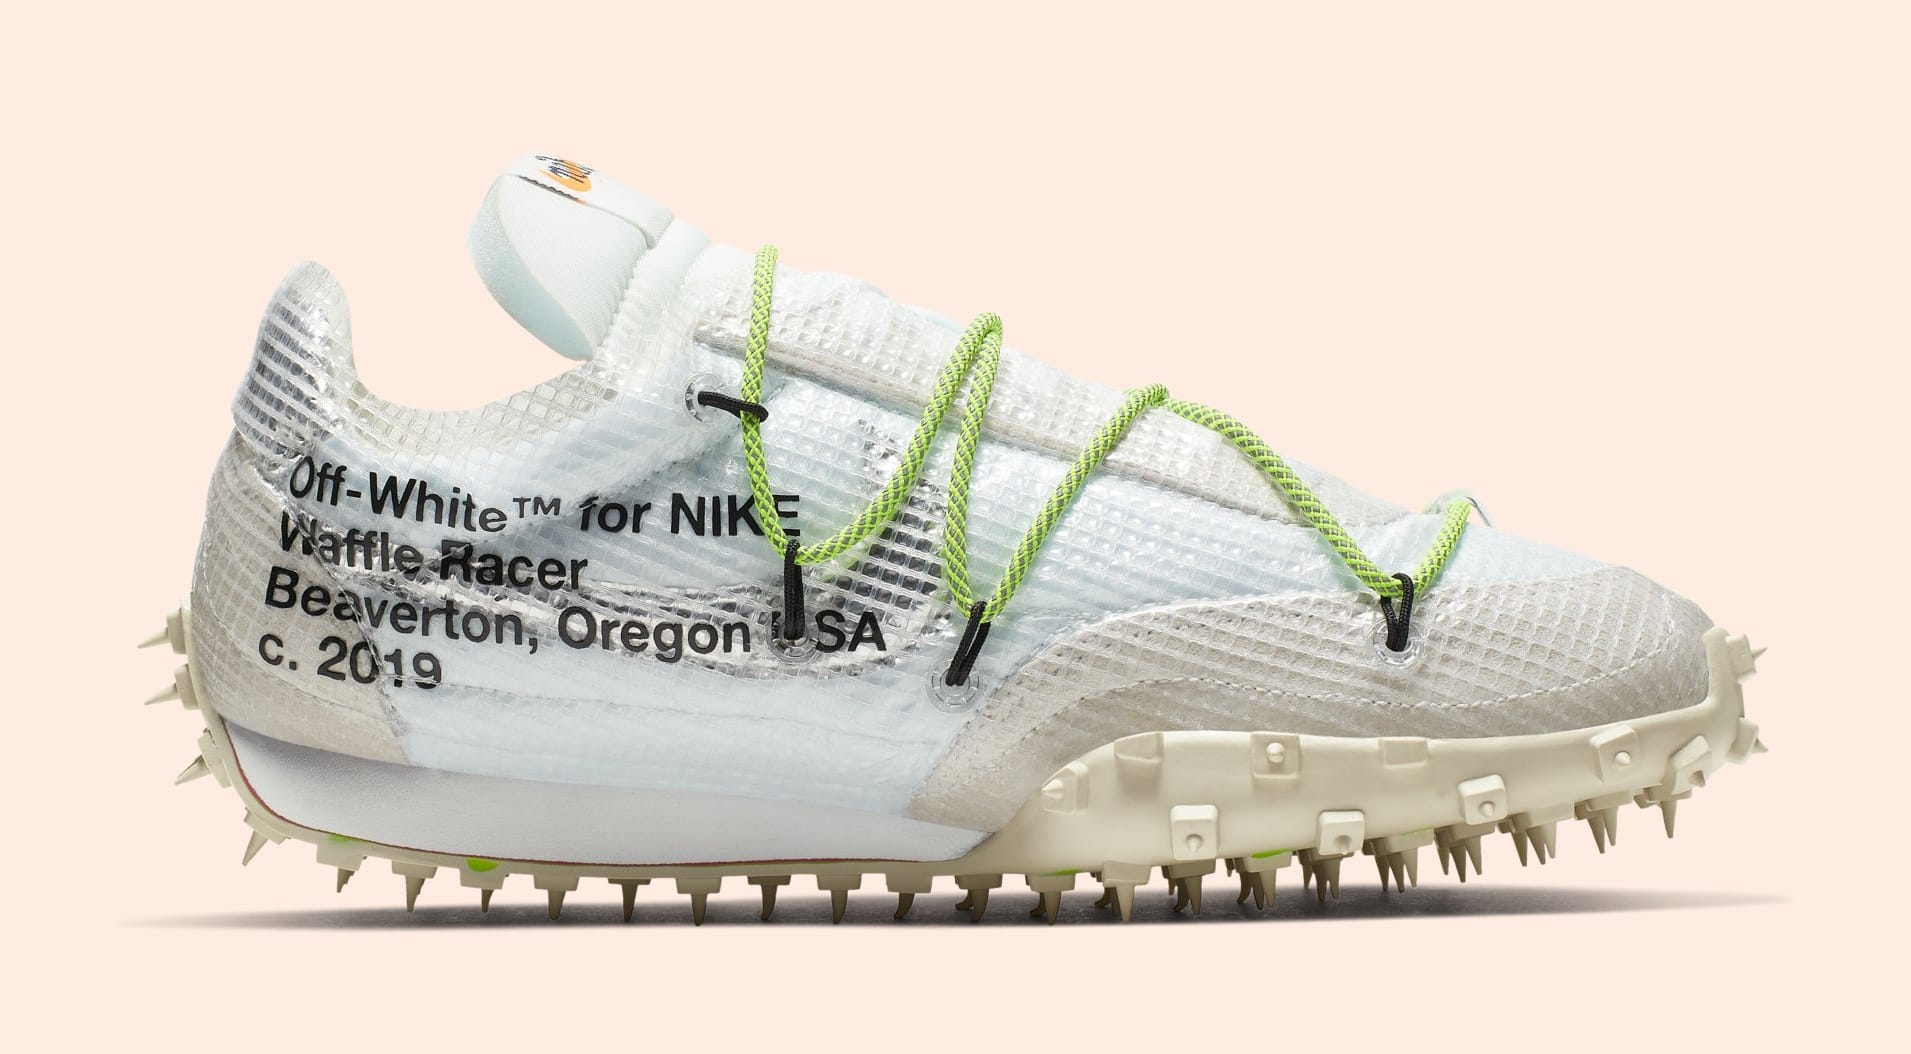 off-white-nike-waffle-racer-womens-electric-green-cd8180-100-medial